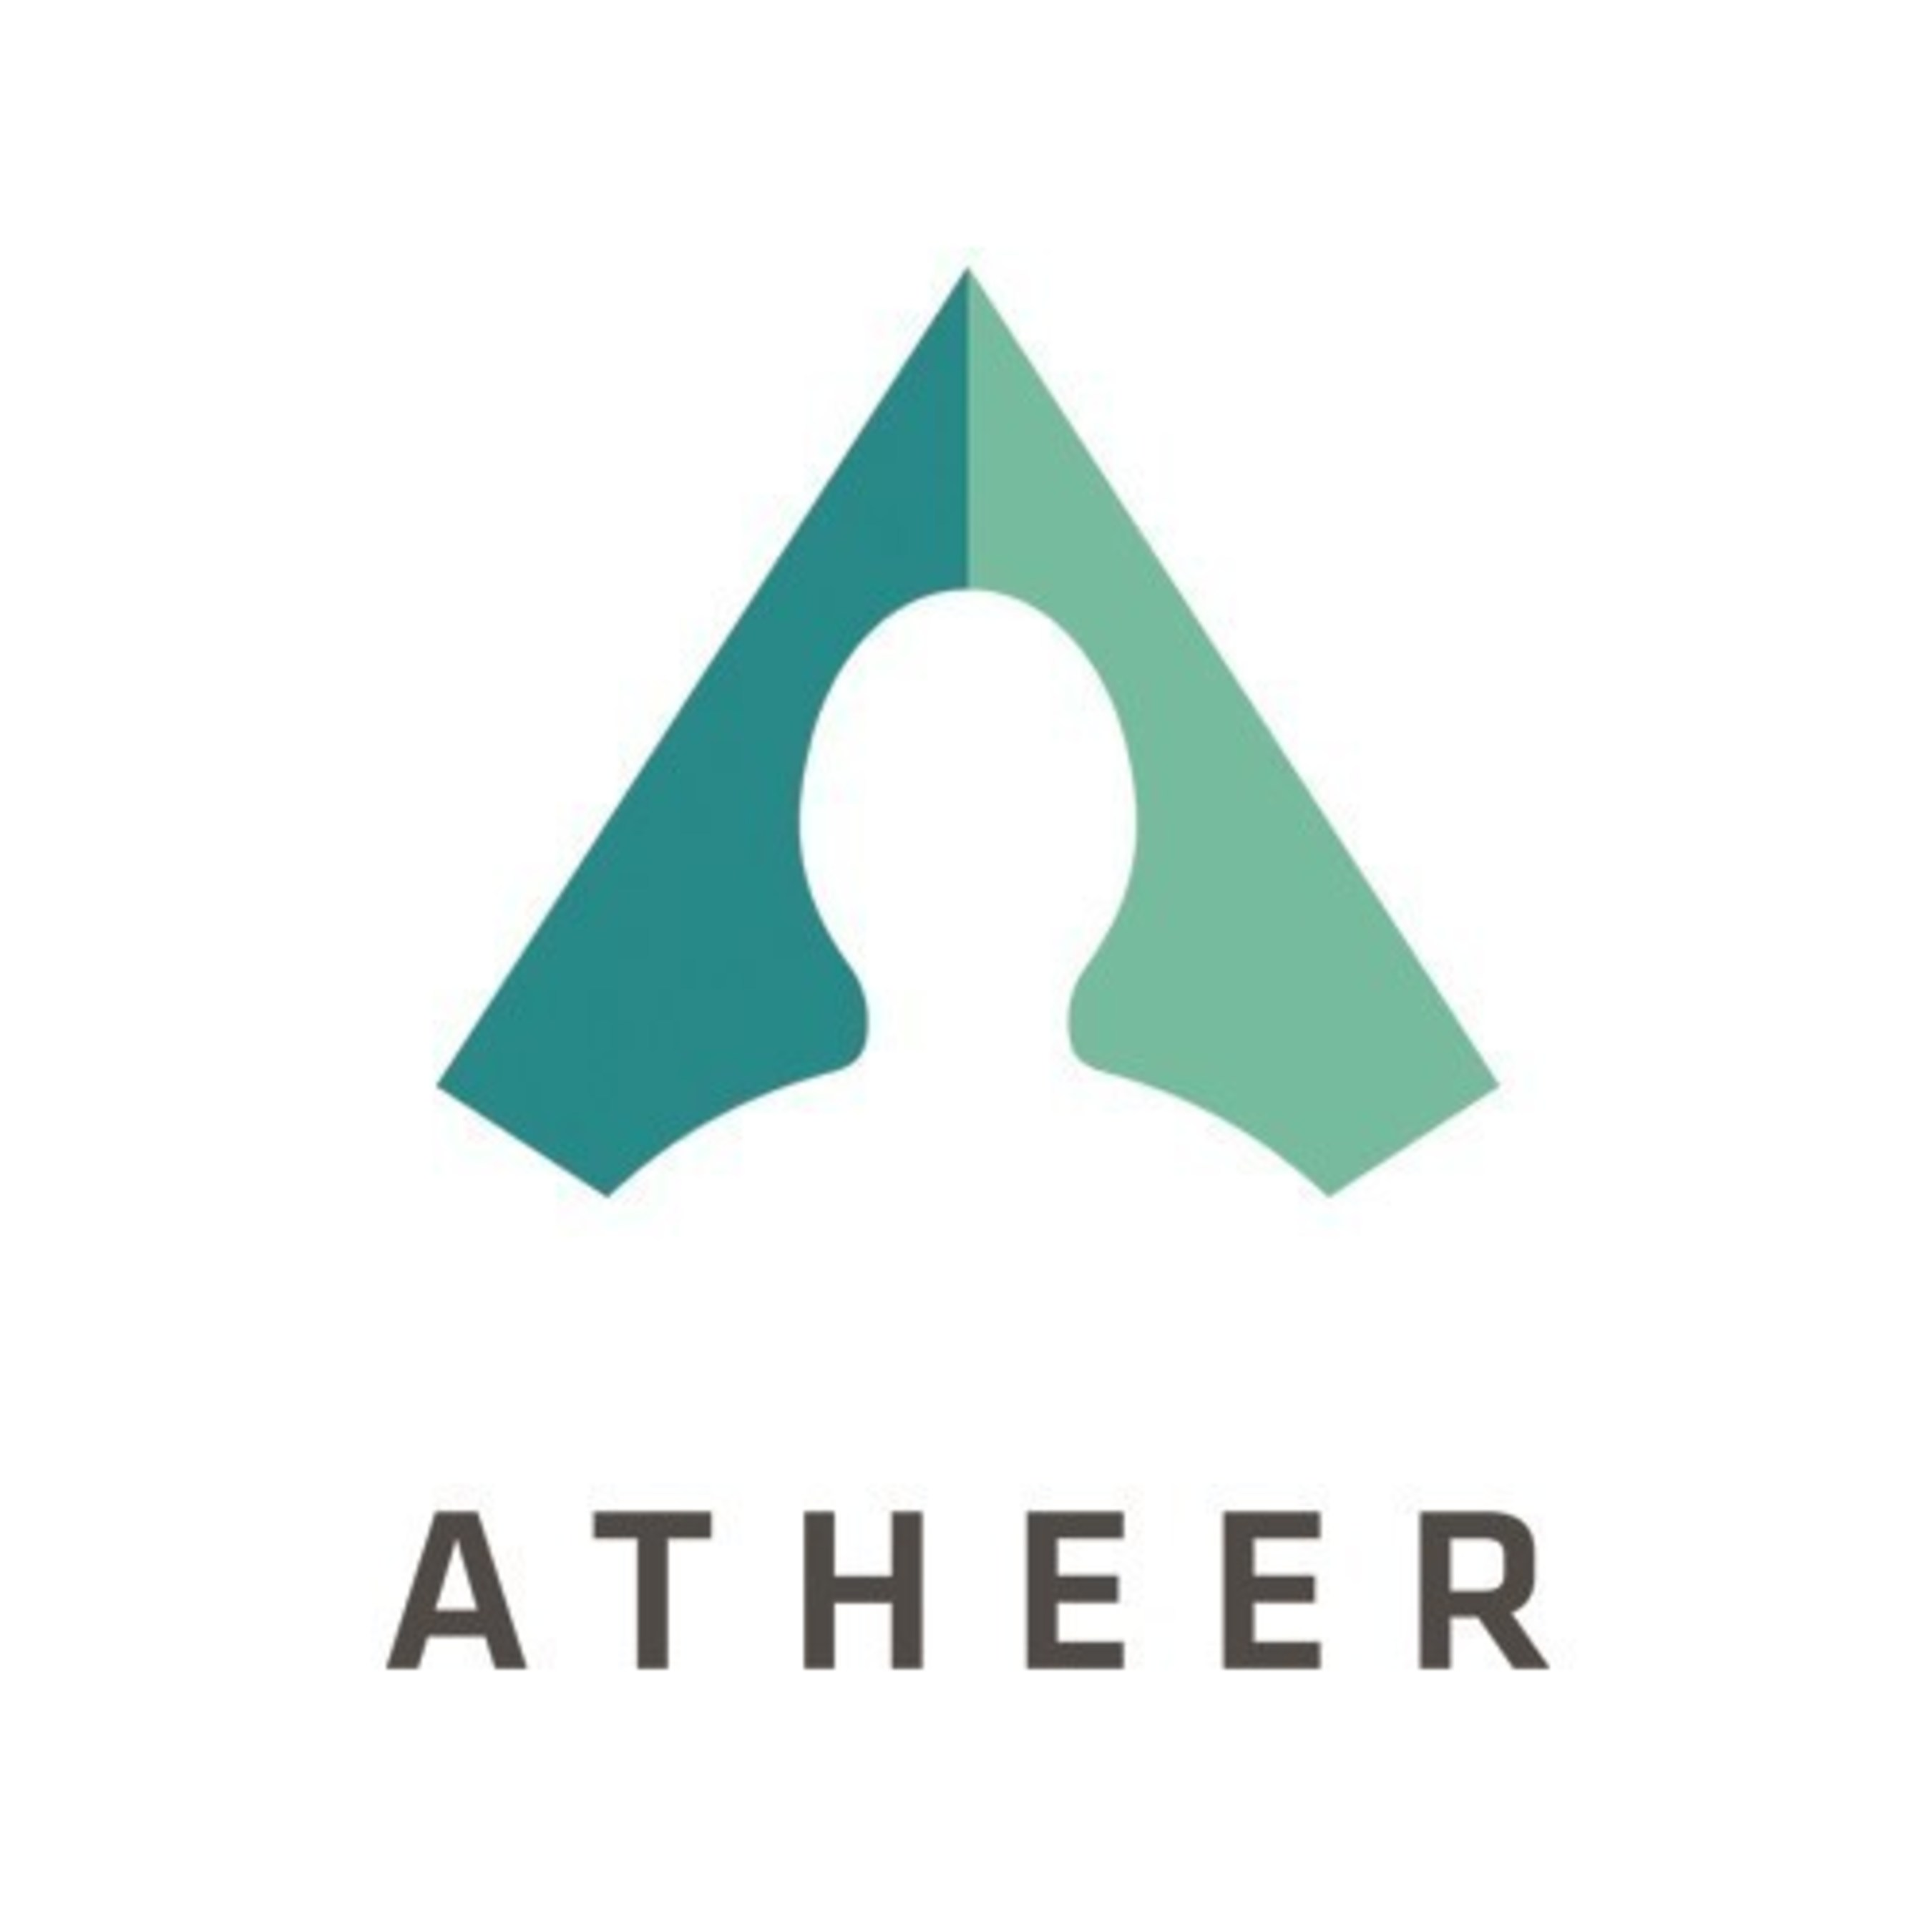 Pioneer of Augmented Reality Computing for the Enterprise, Atheer Closes $14 Million Series B